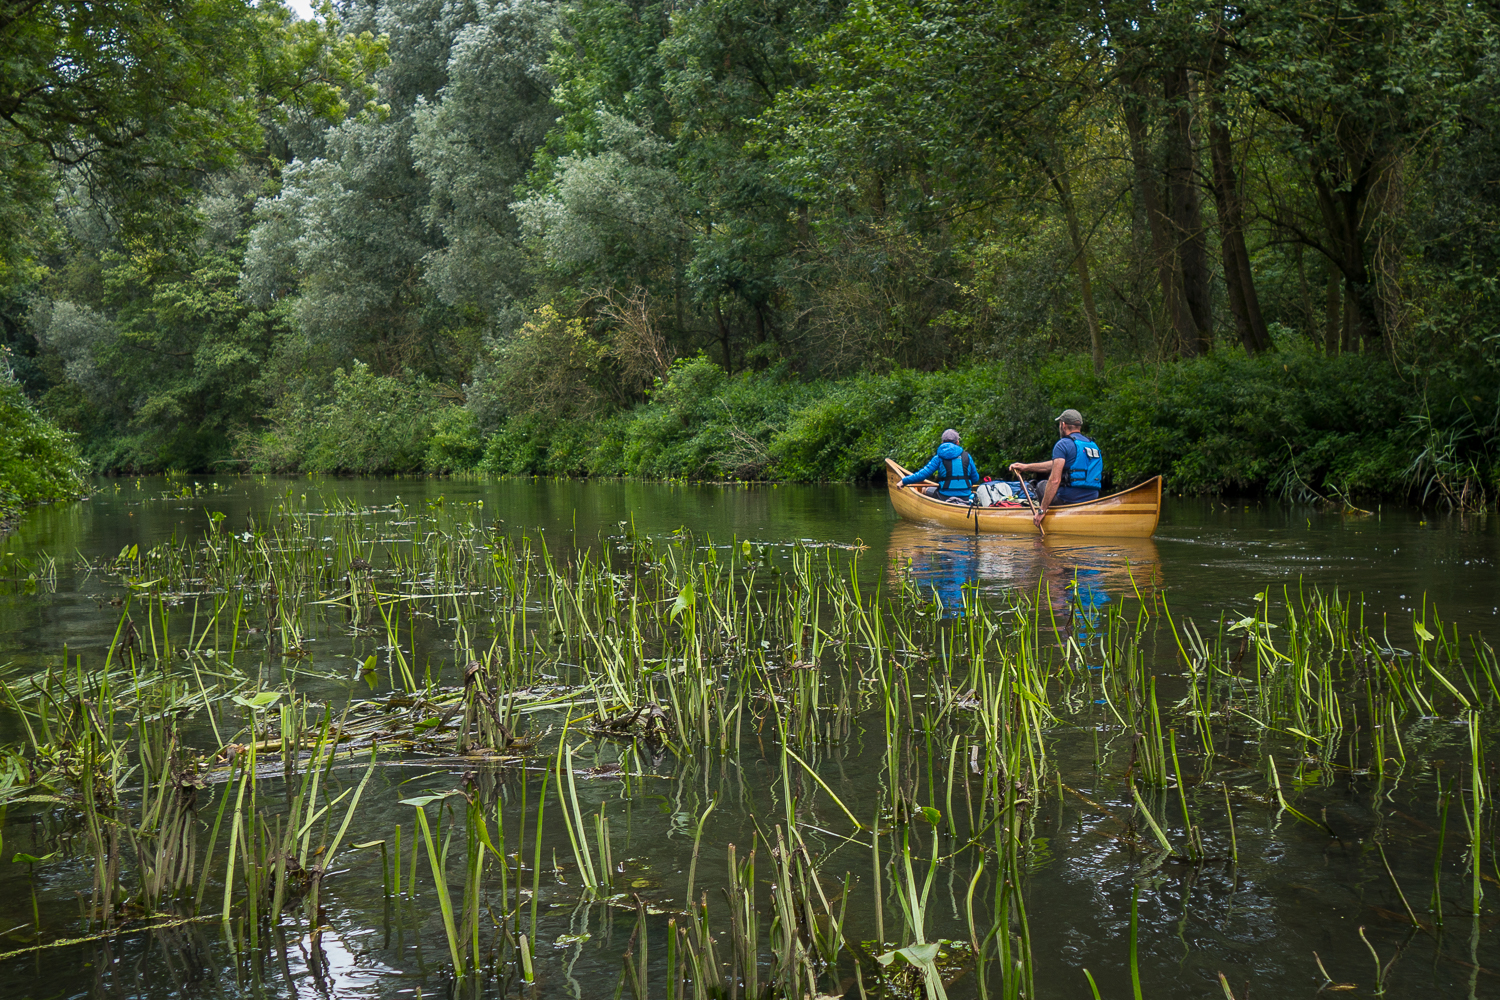 Guided Canoe trips on the Dommel